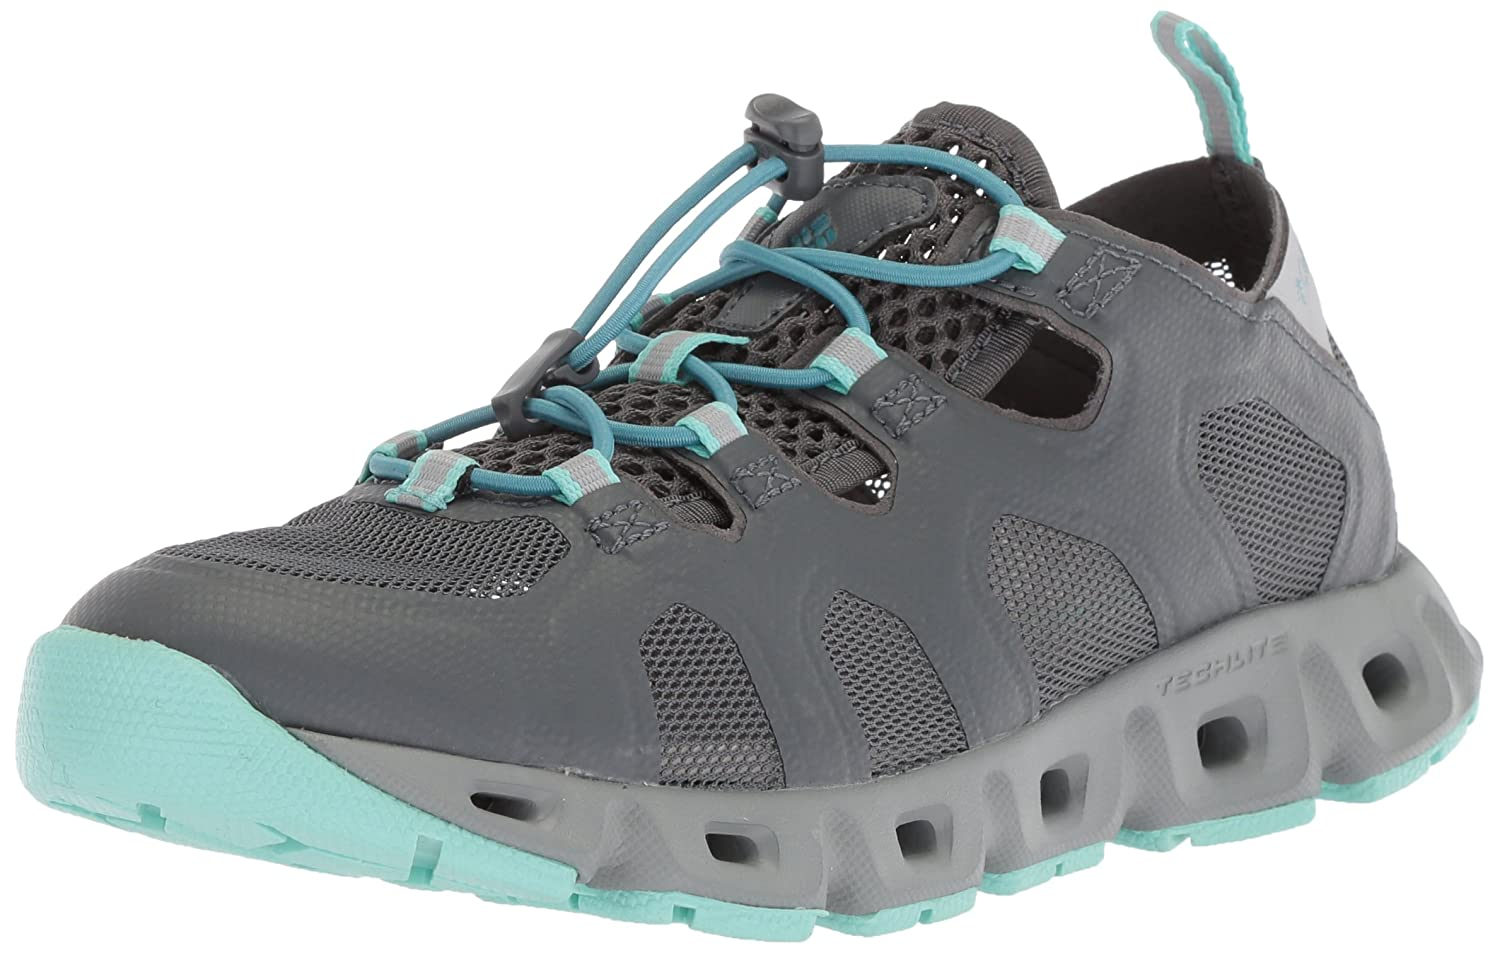 Columbia Women's Supervent Water Shoe B073W6MHS7 6.5 B(M) US|Graphite, Canyon Blue